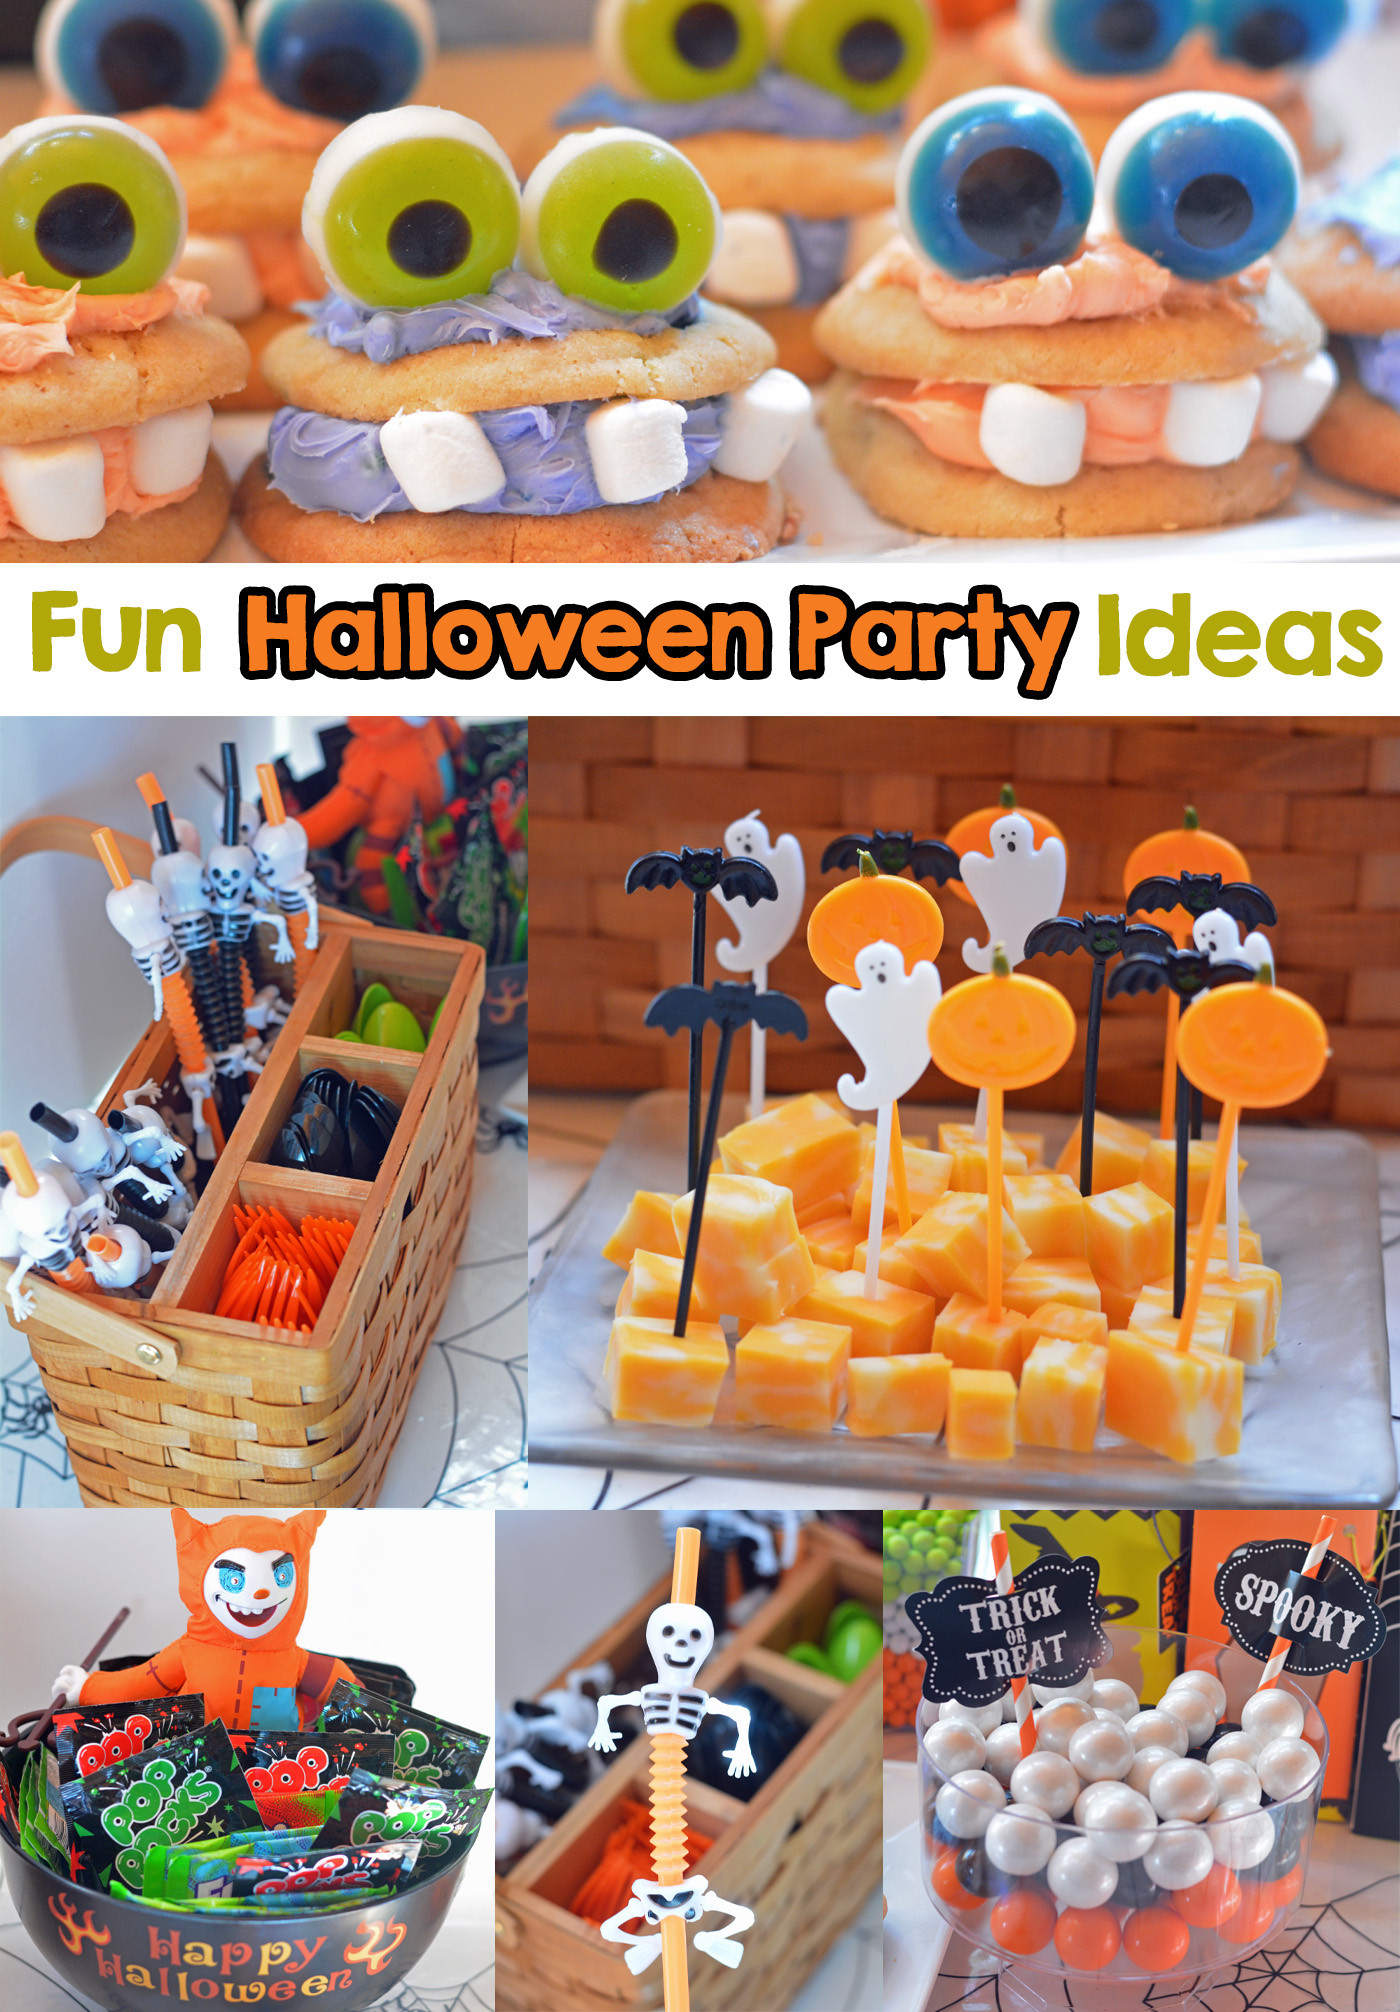 Halloween Themed Kid Party Ideas  Fun Halloween Party & Costume Ideas Mommy s Fabulous Finds